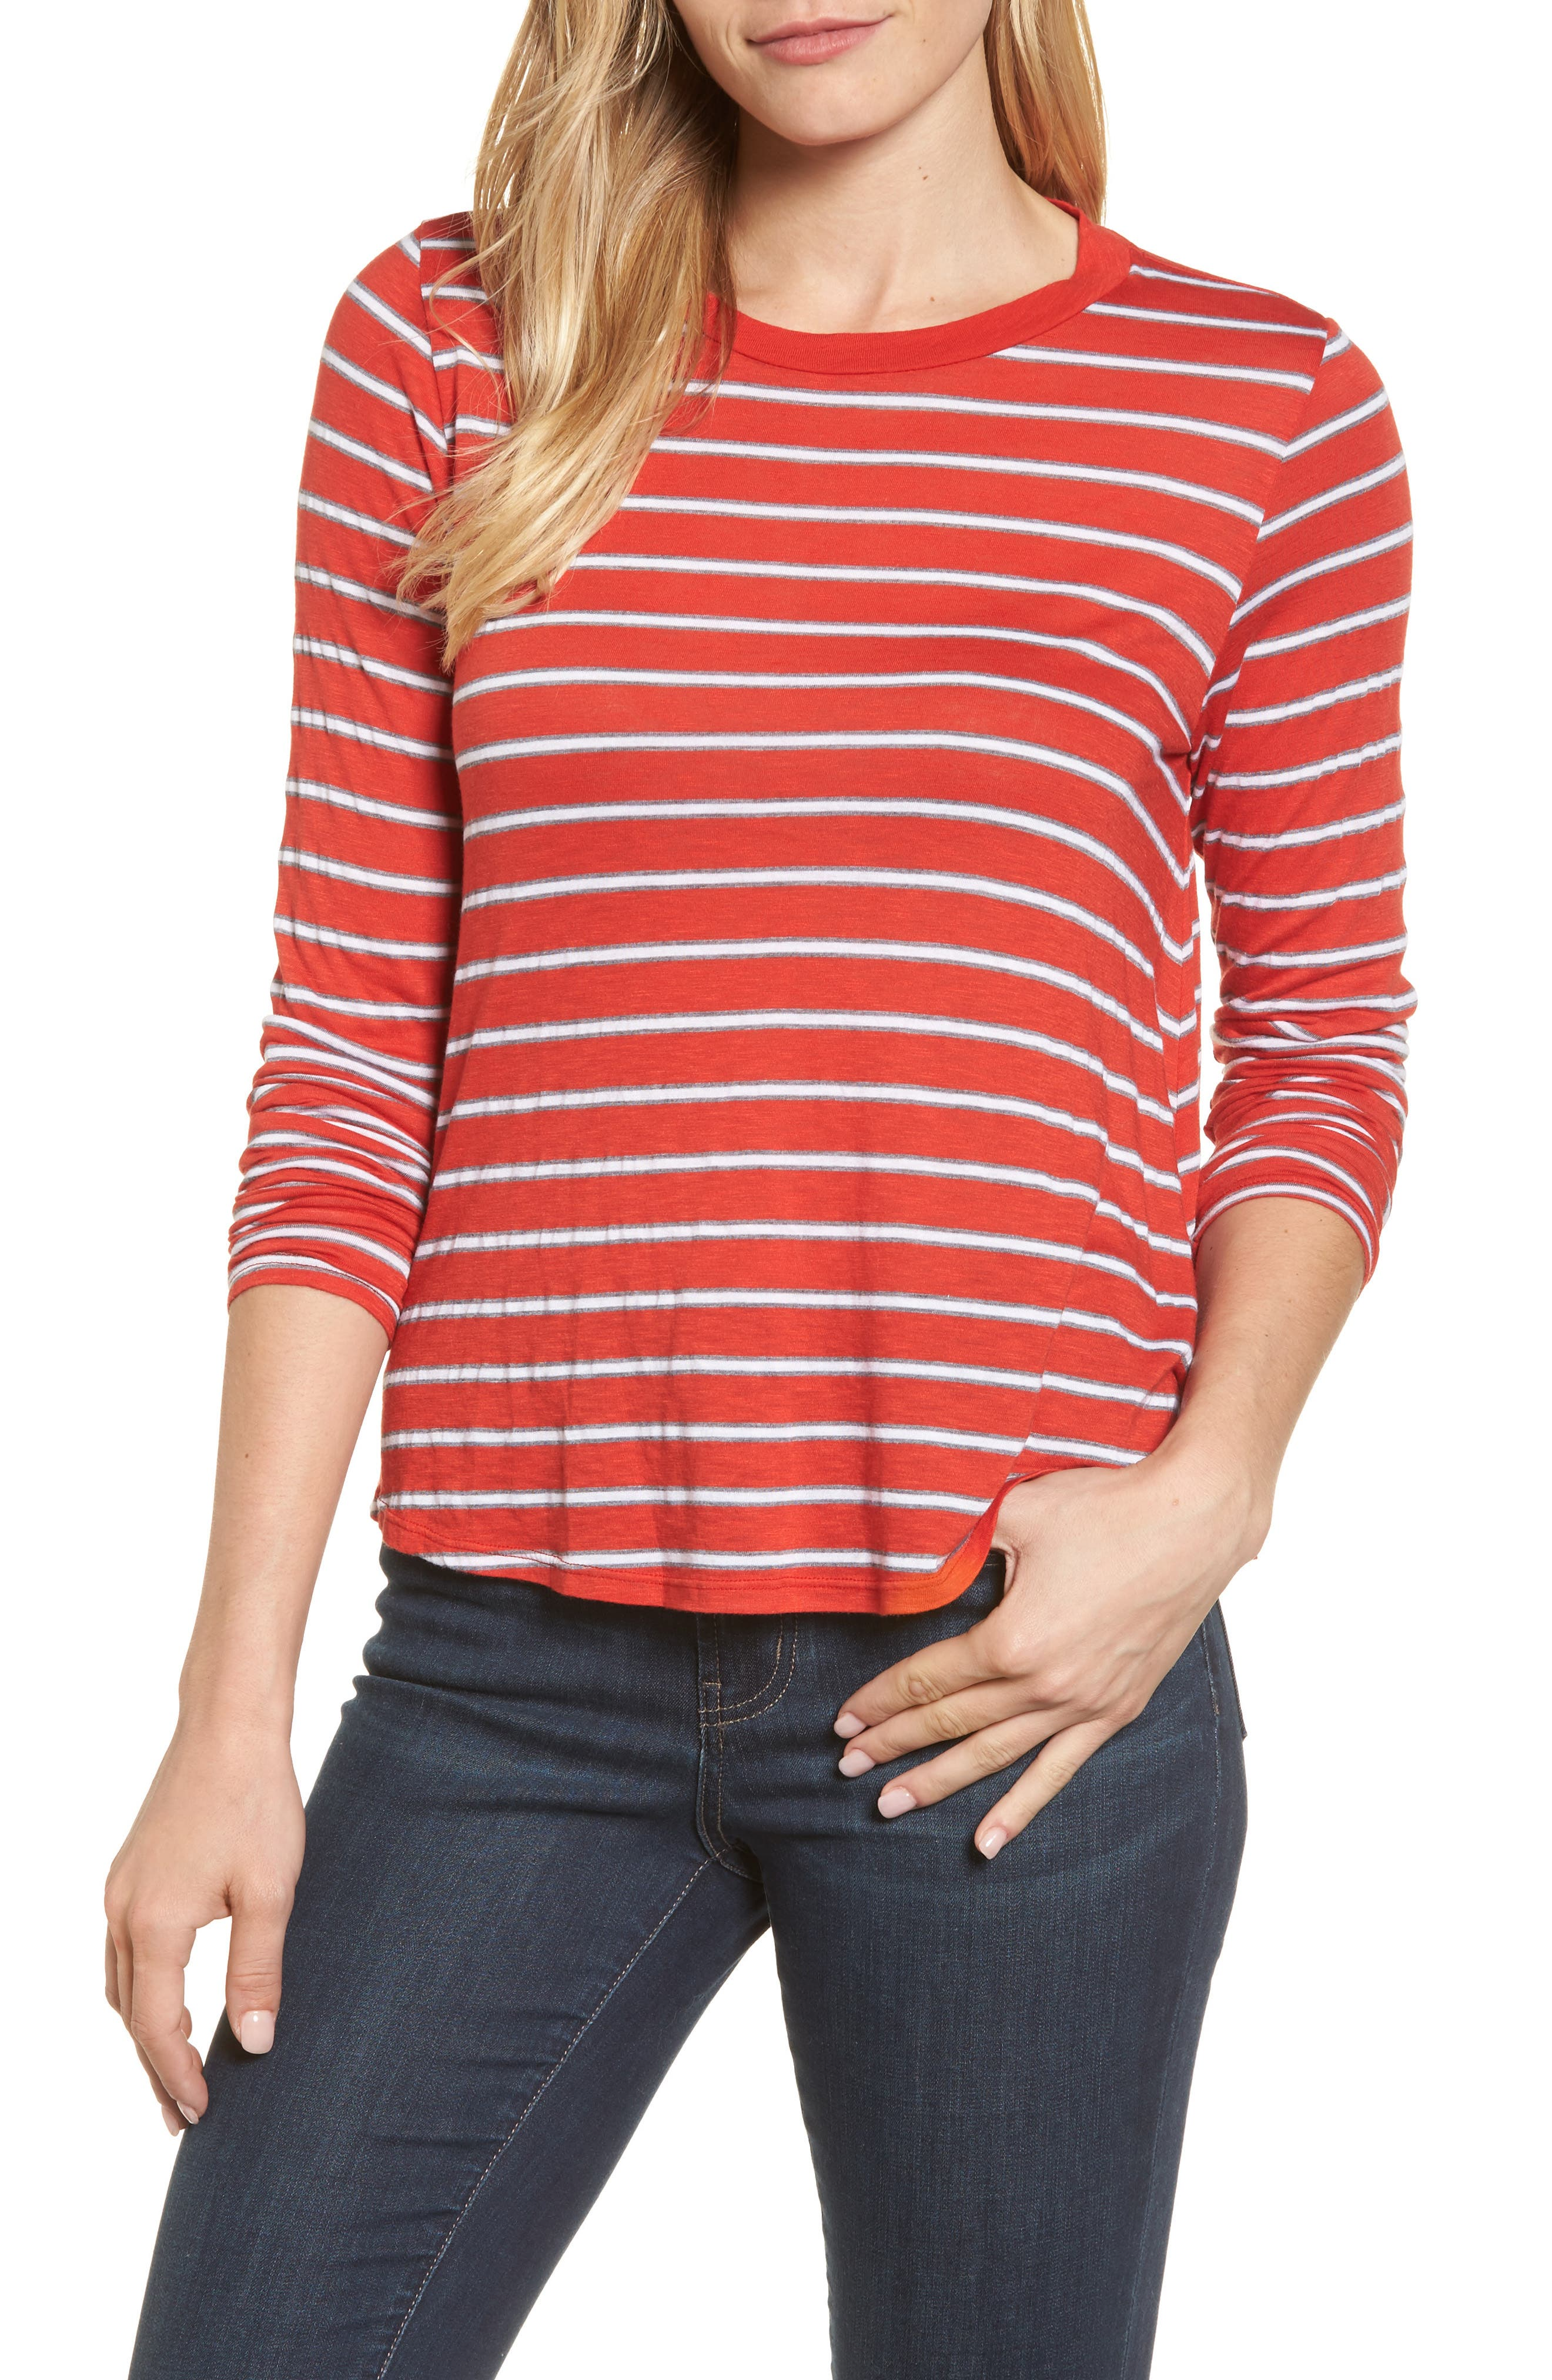 Alternate Image 1 Selected - Velvet by Graham & Spencer Stripe Modal Knit Top